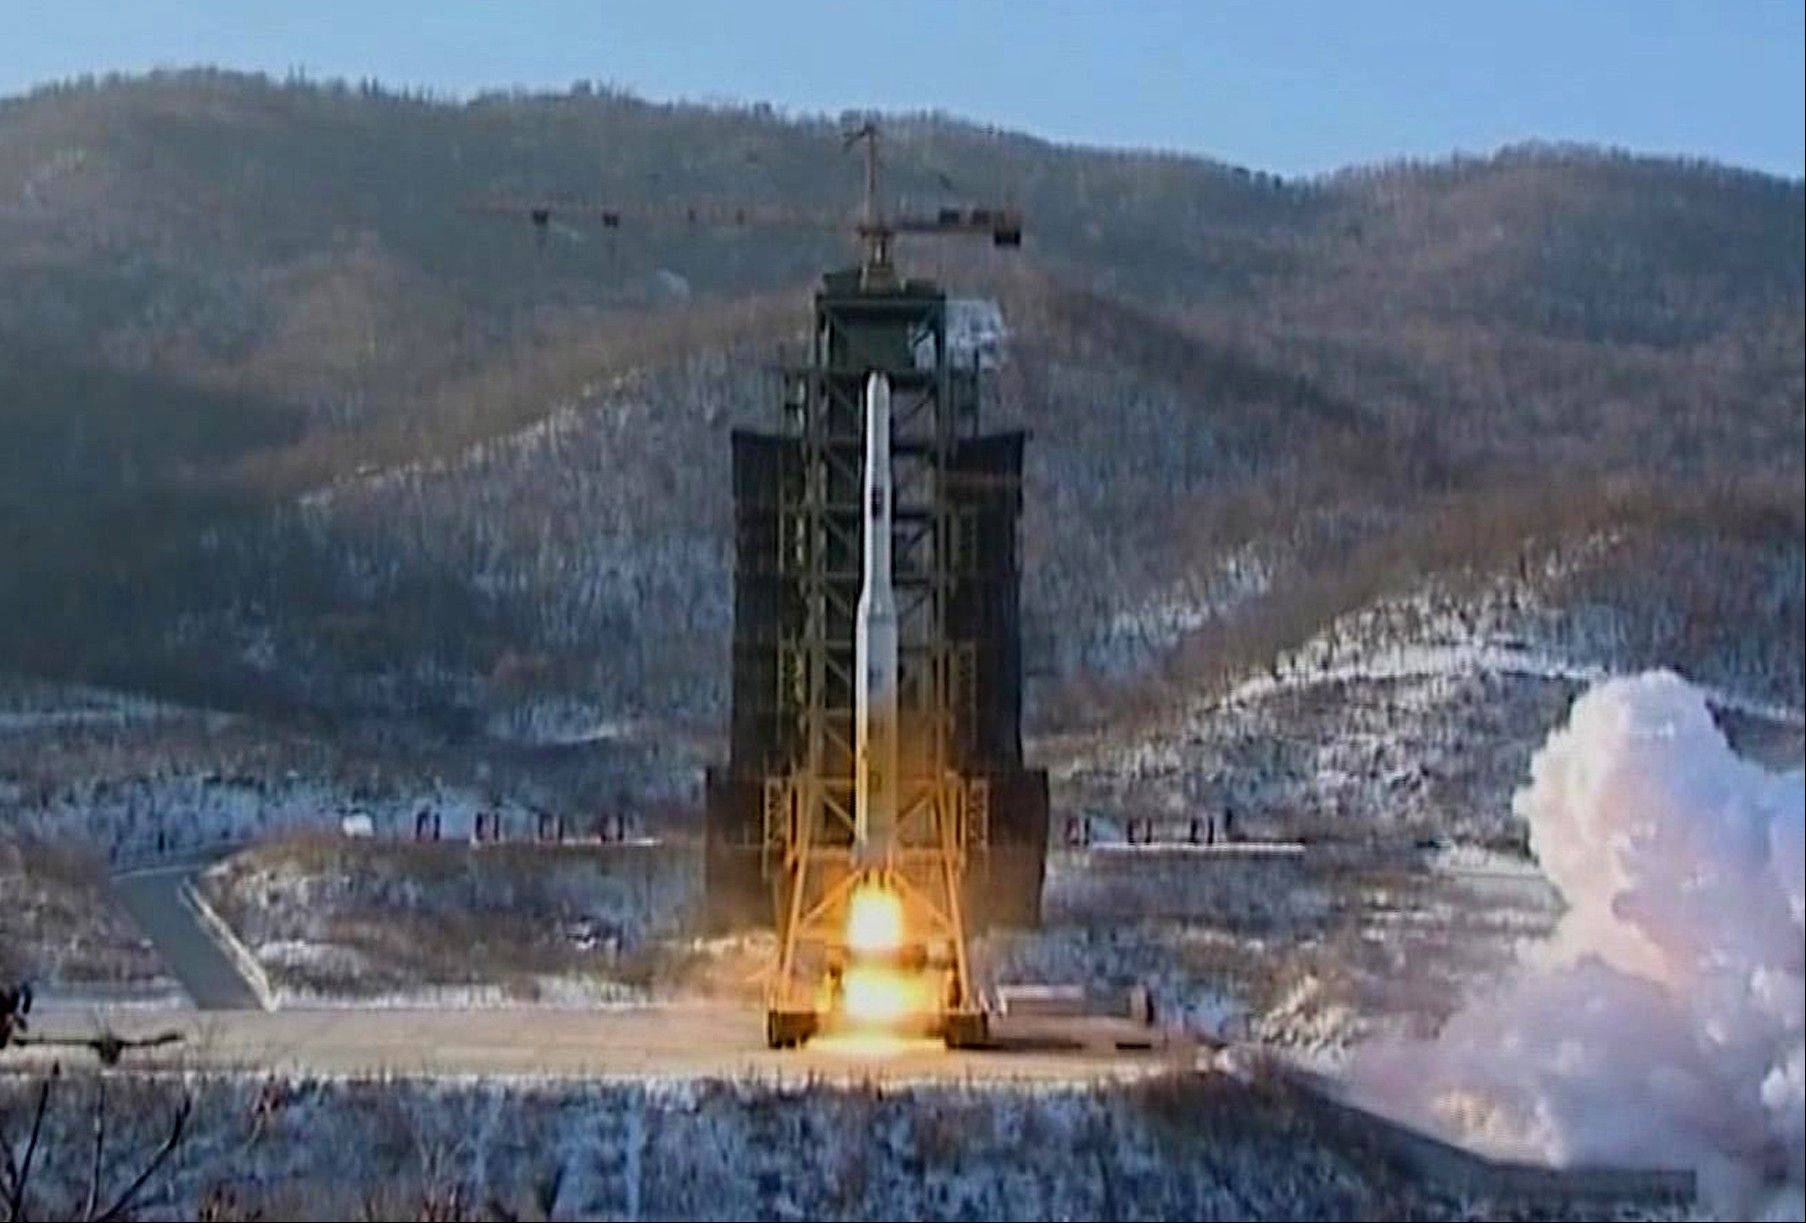 In this Dec. 12, 2012 image, North Korea's Unha-3 rocket lifts off from the Sohae launching station. North Korea's top governing body warned Thursday, Jan. 24, 2013 that the regime will conduct its third nuclear test in defiance of U.N. punishment, and made clear that its long-range rockets are designed to carry not only satellites but also warheads aimed at striking the United States.